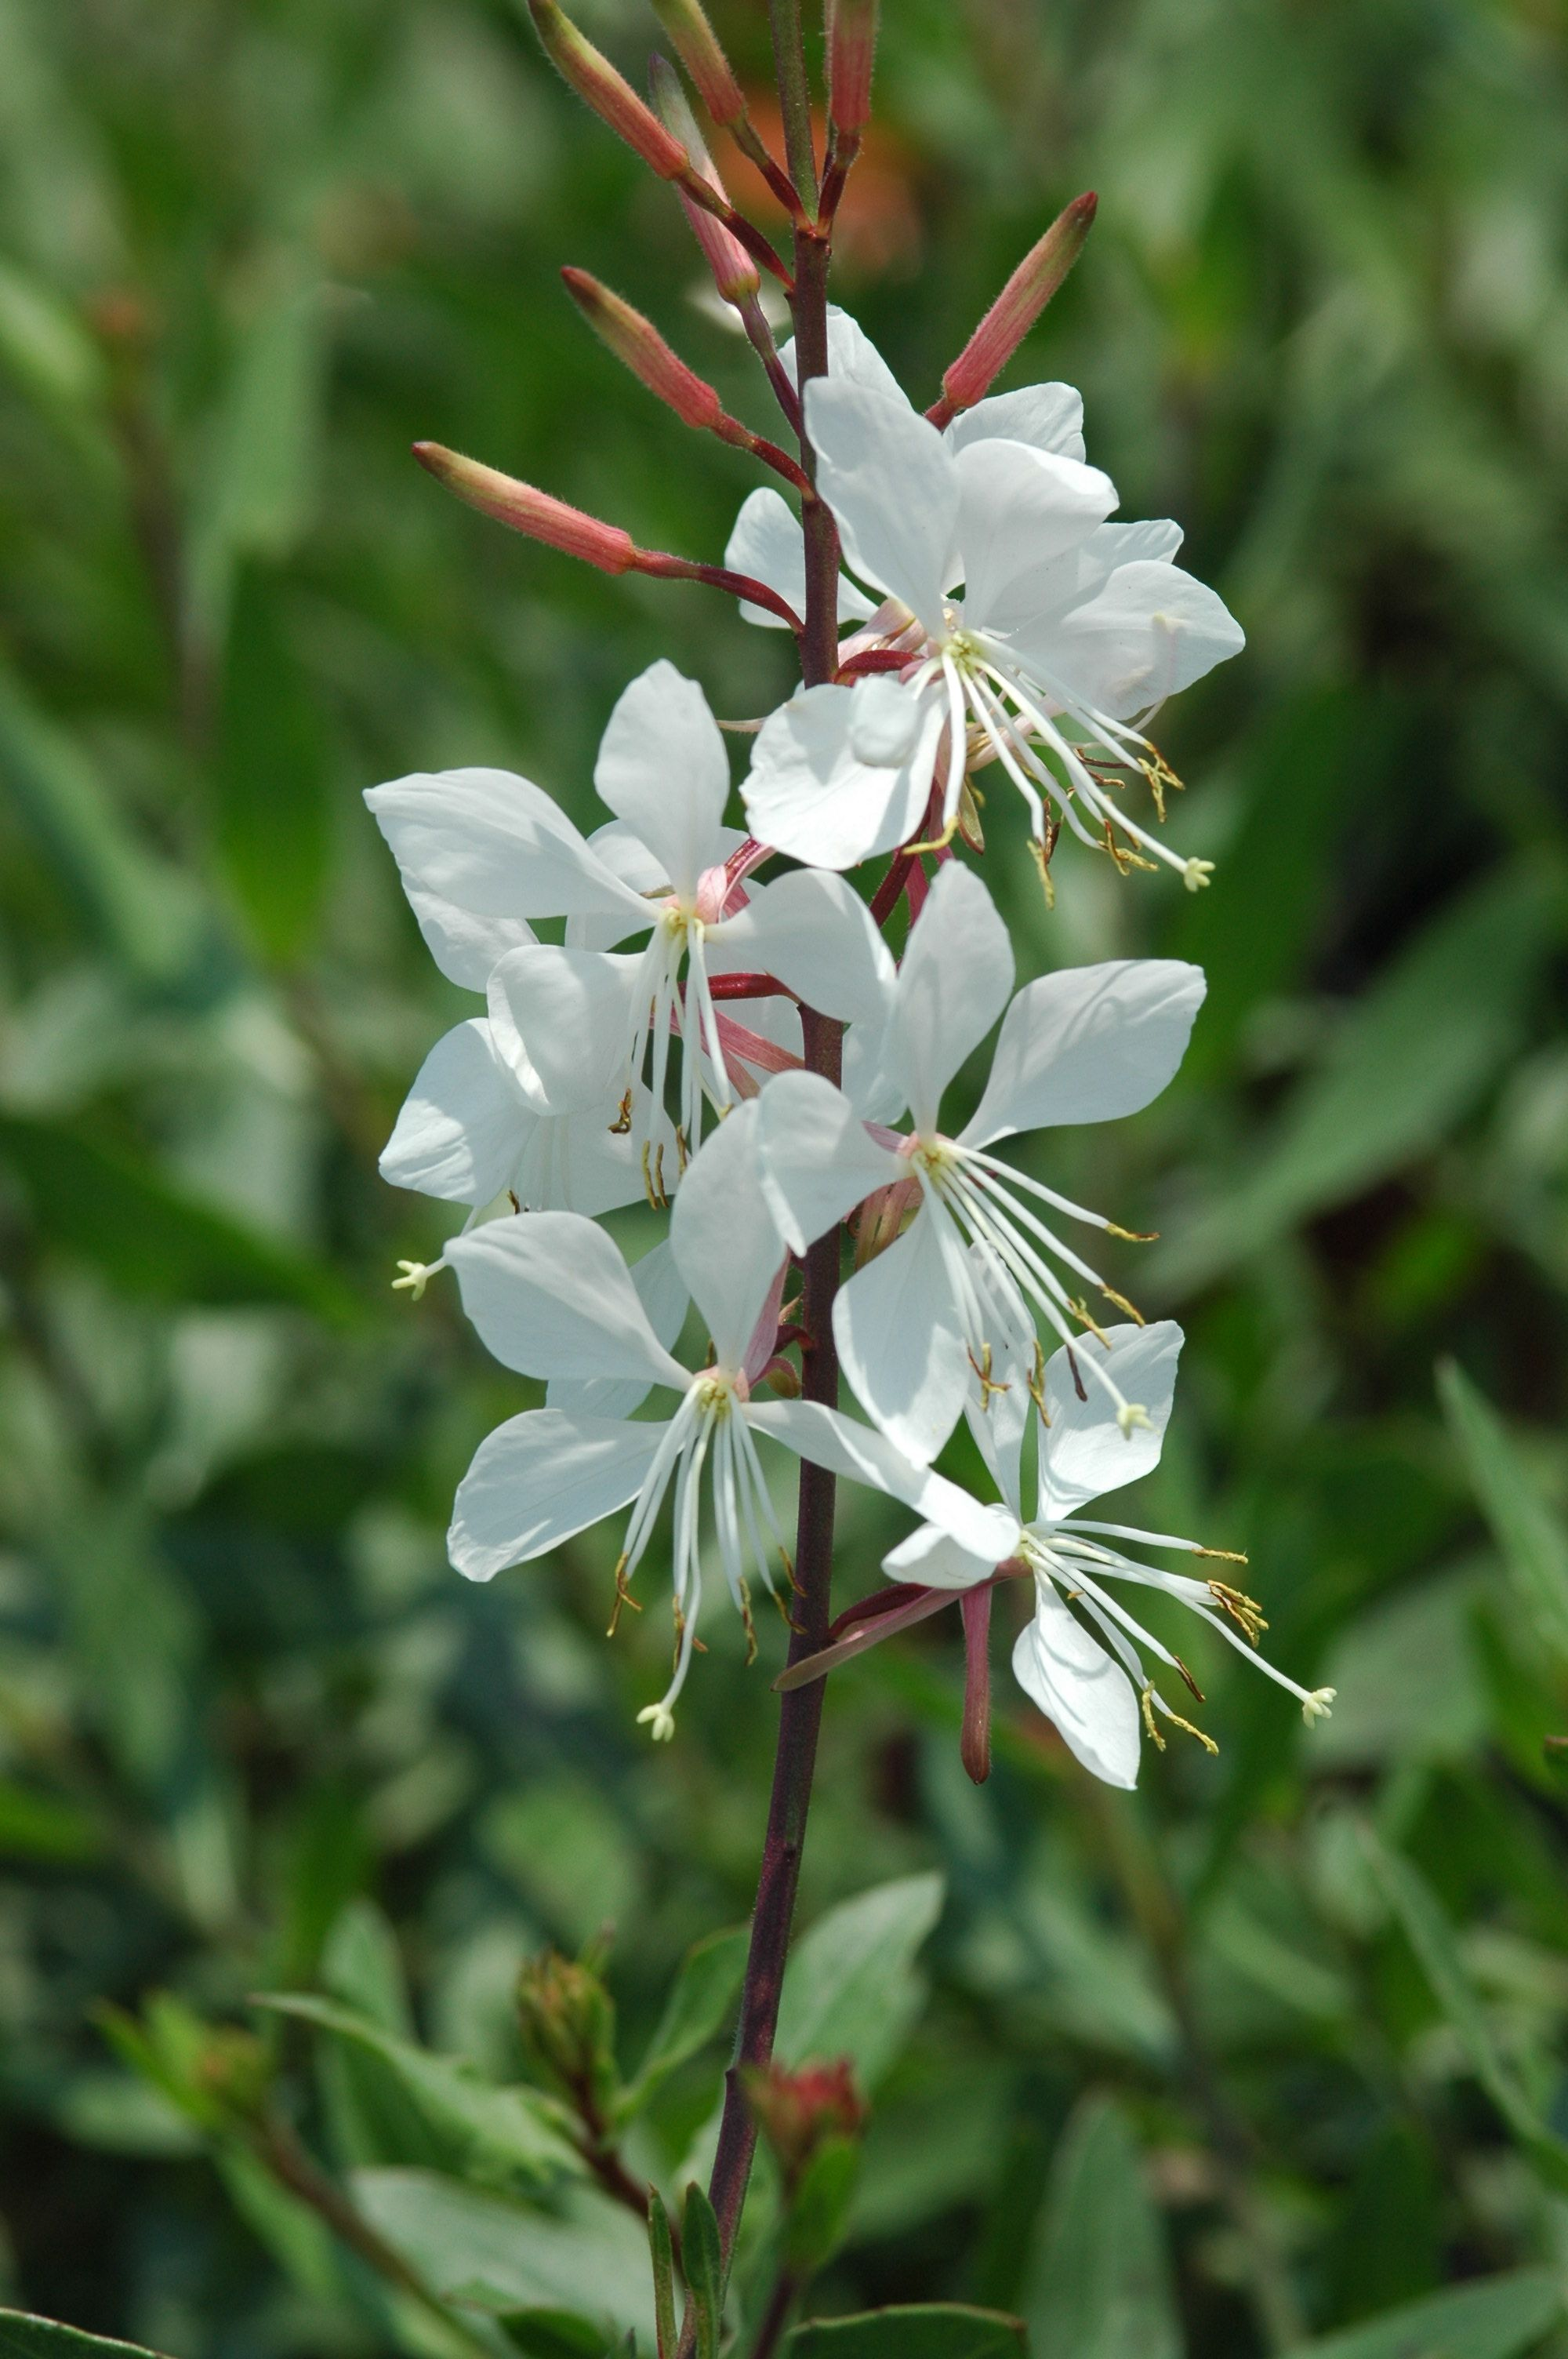 Gaura Is A Hardy Herbaceous Perennial That Is Almost Constantly In